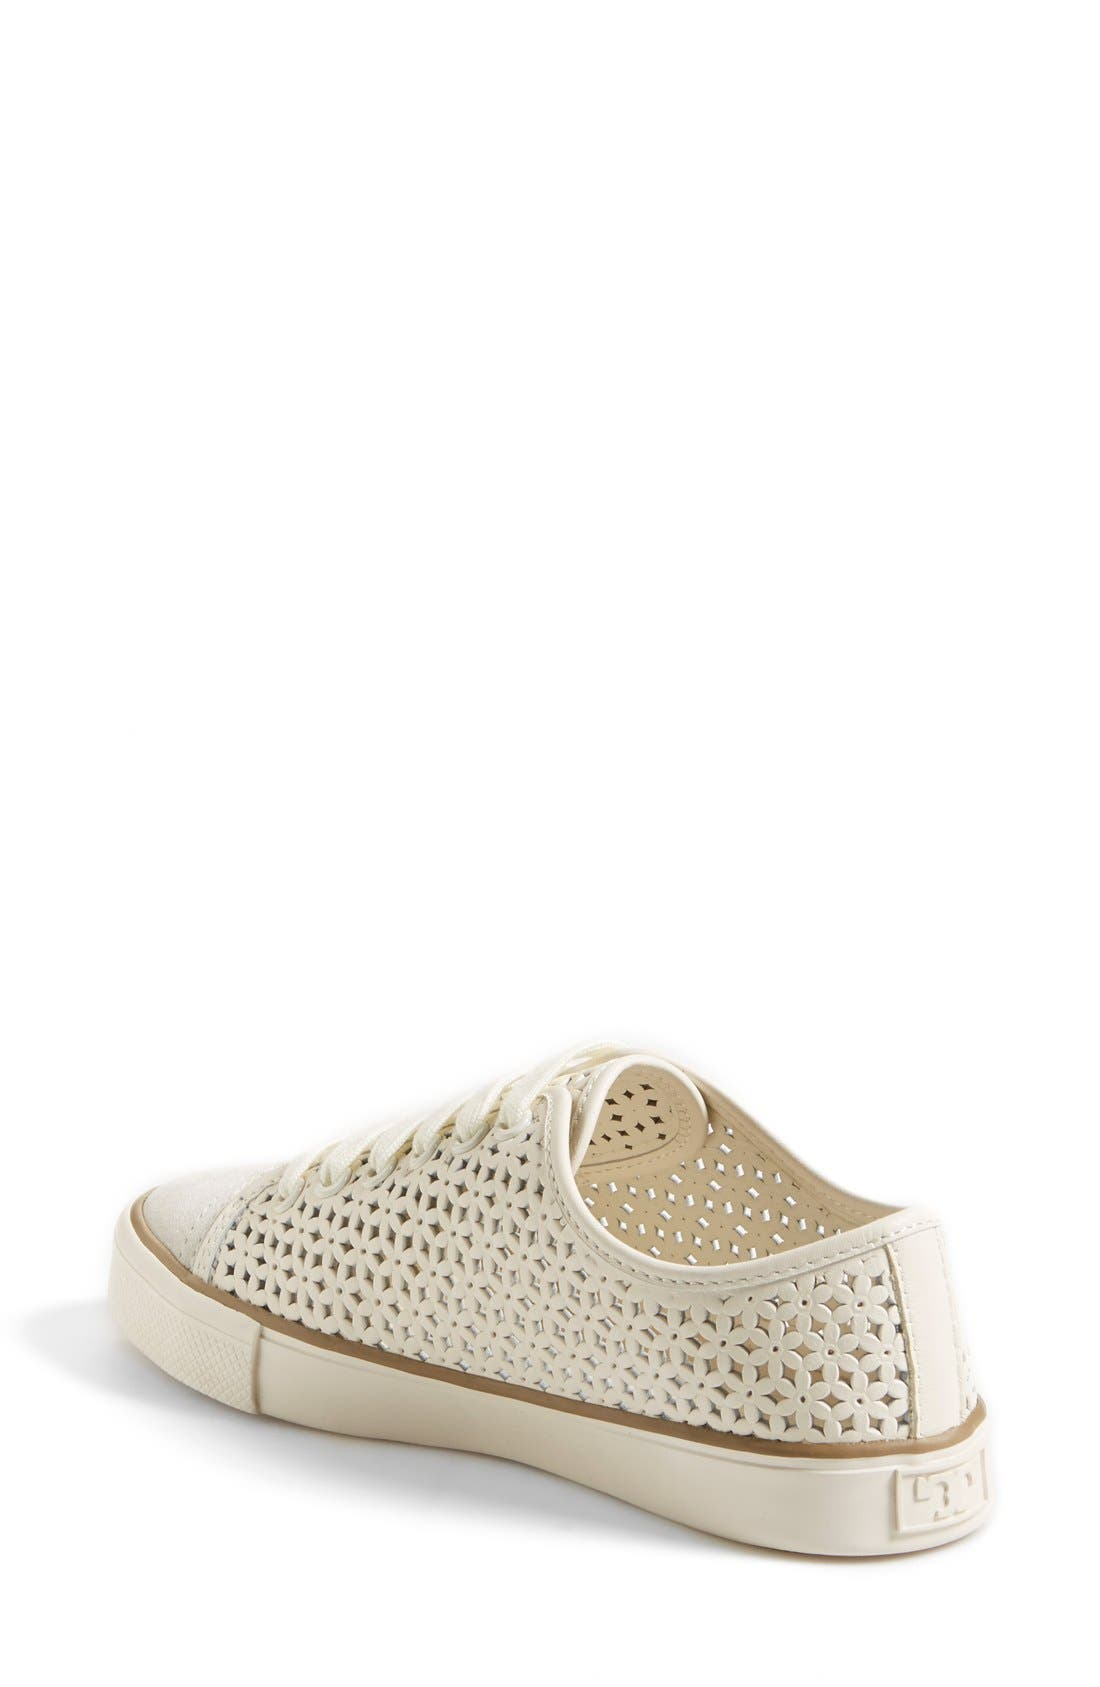 'Daisy' Perforated Sneaker,                             Alternate thumbnail 4, color,                             104